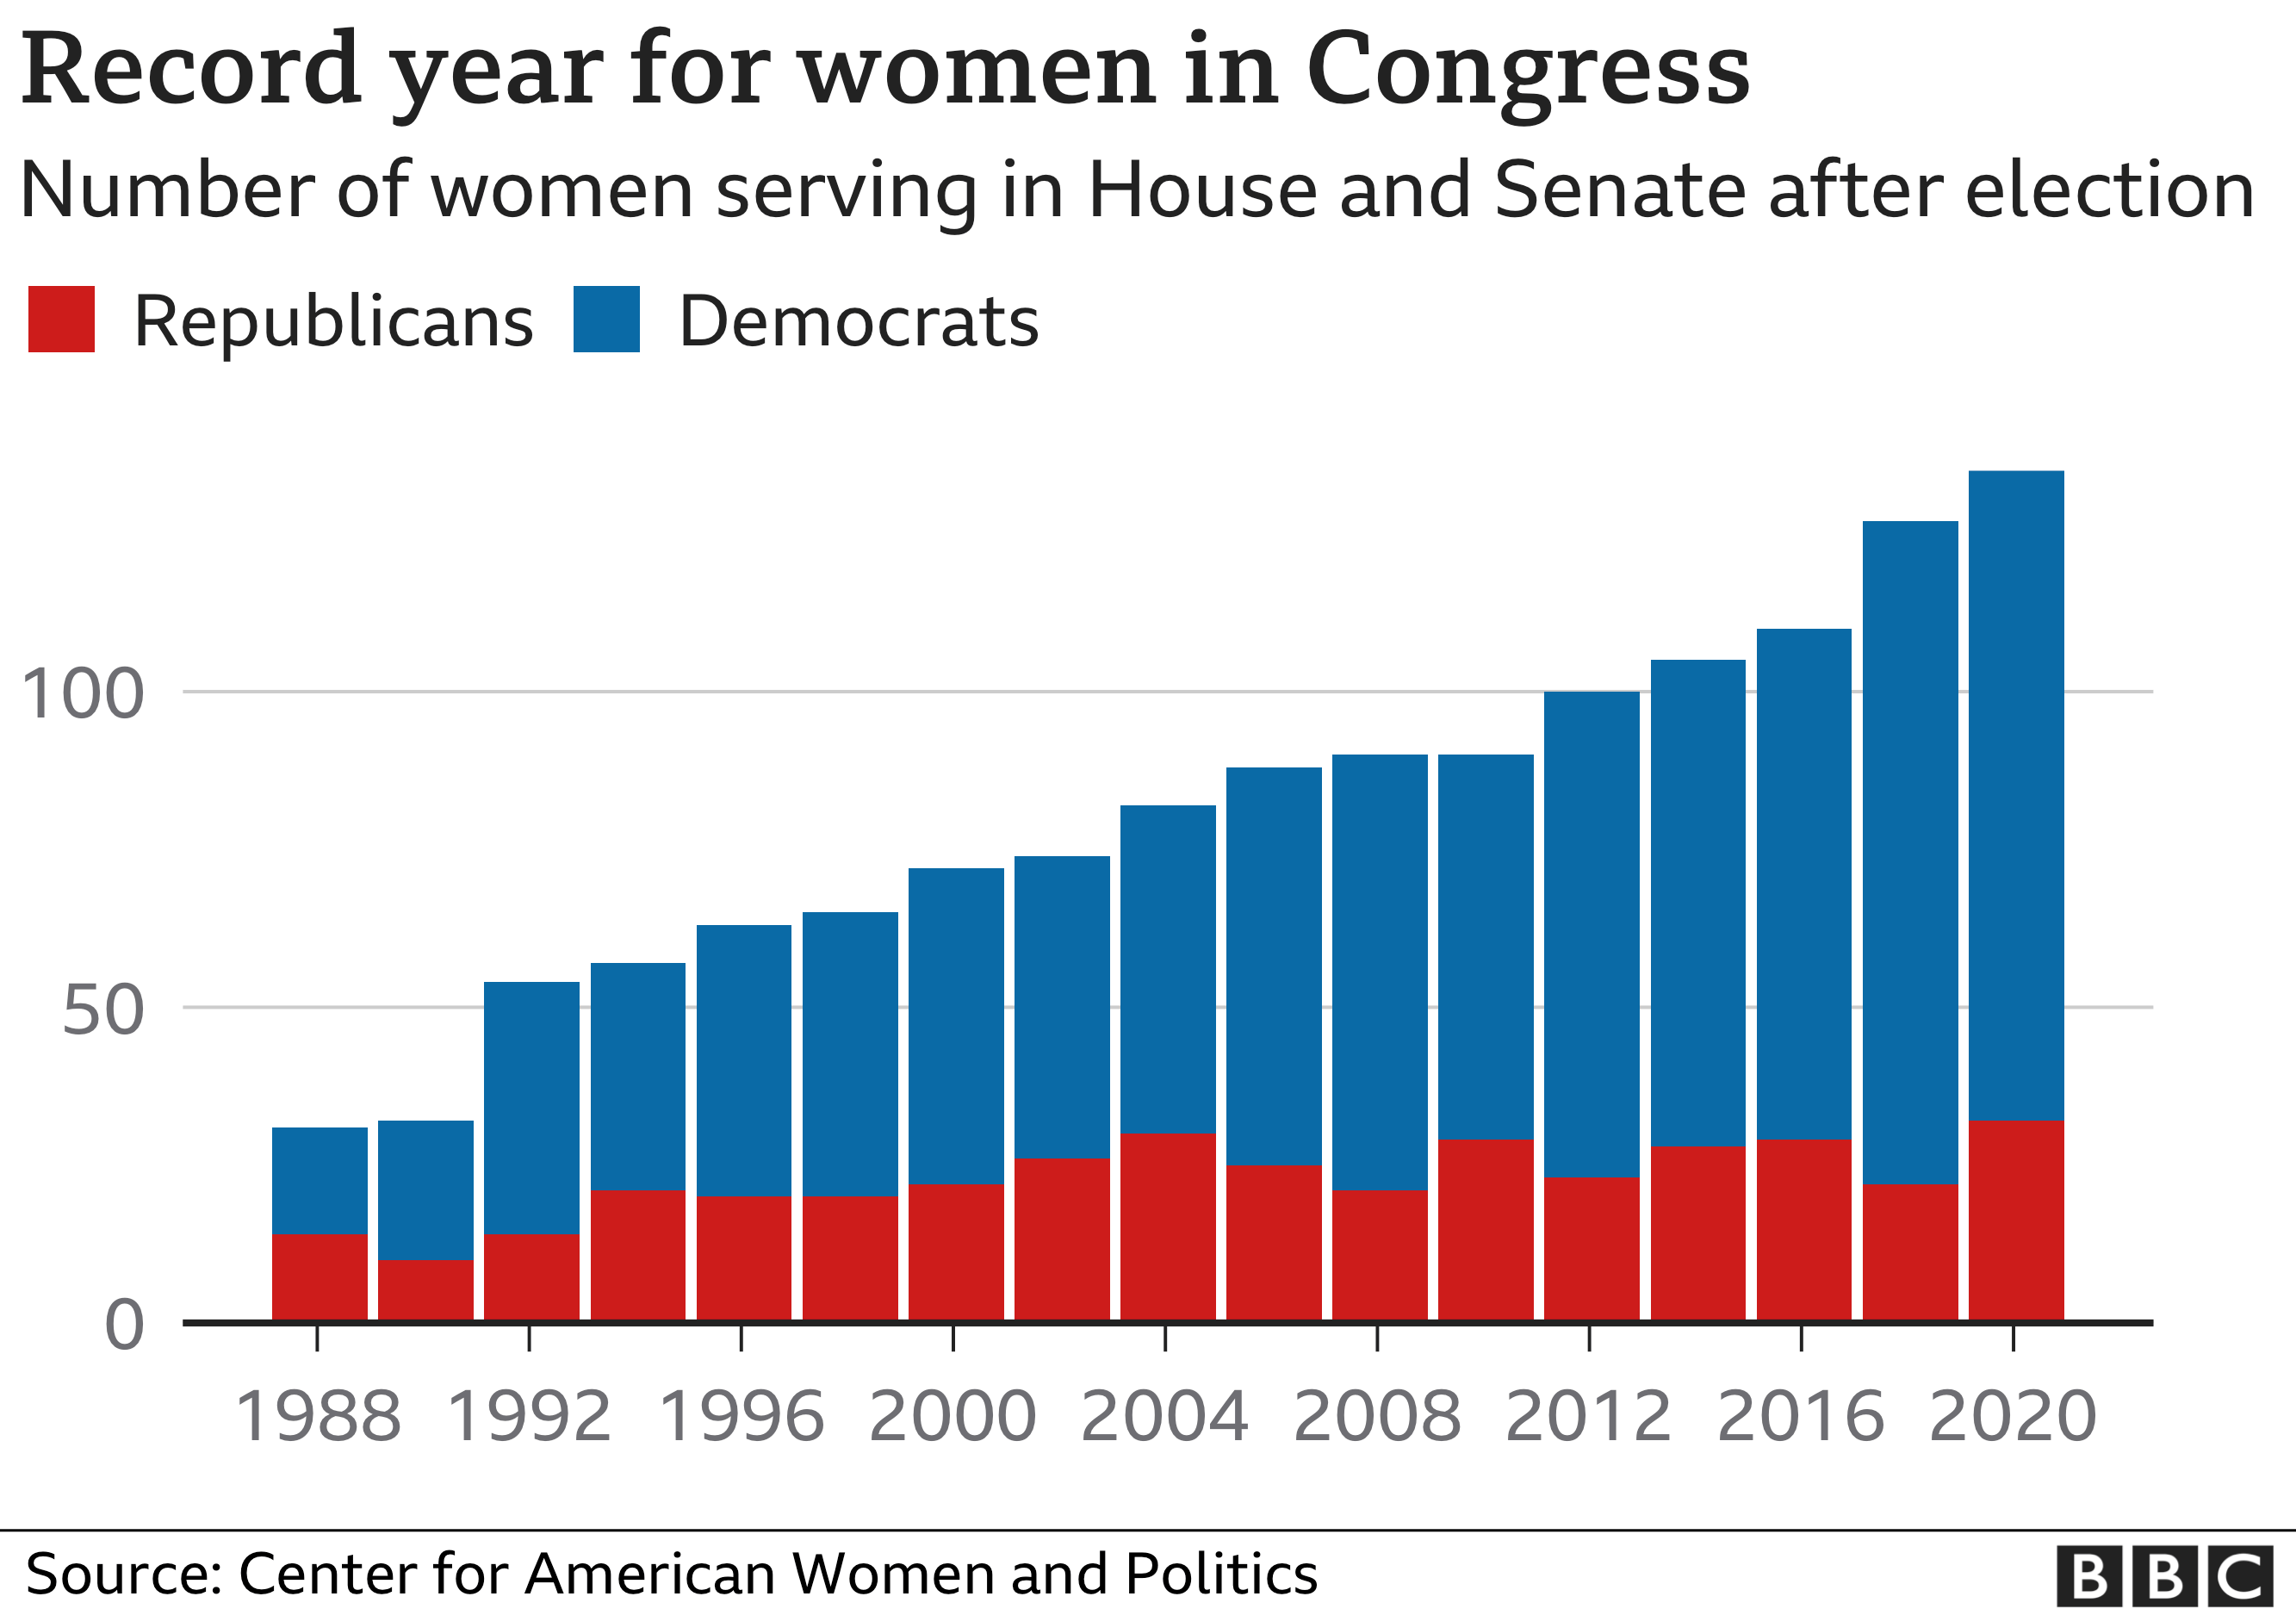 Chart showing the rising number of women in Congress